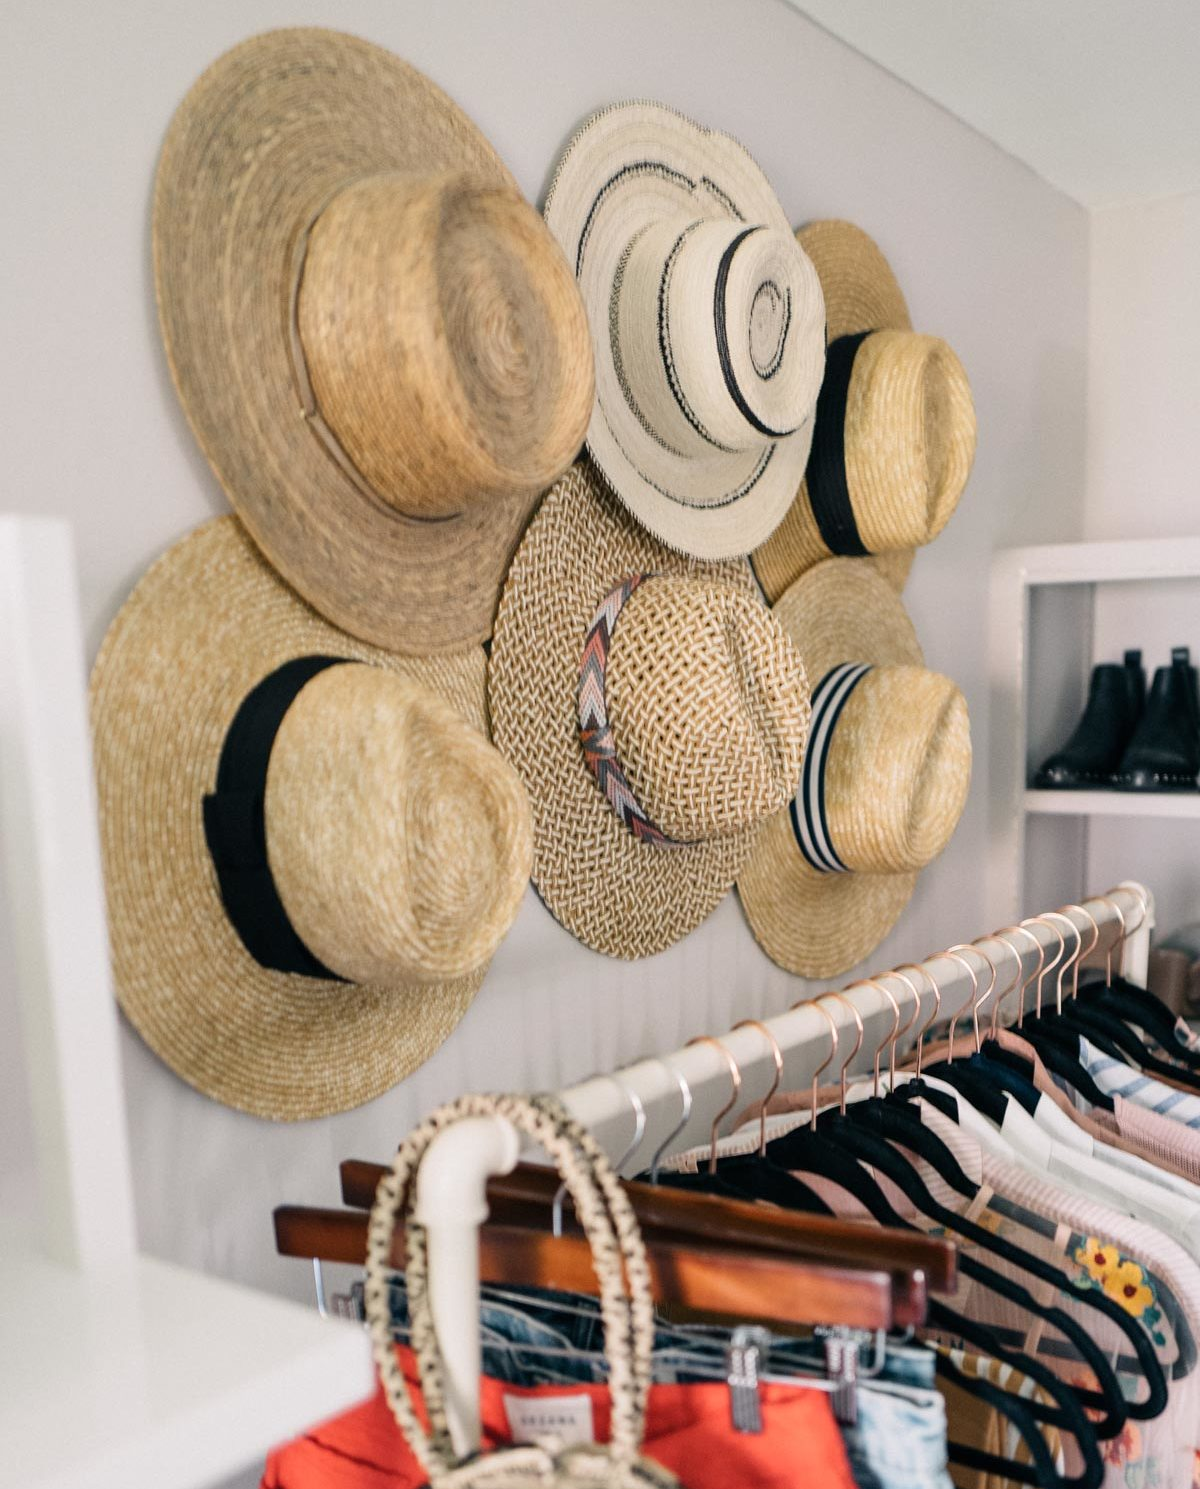 Jess Ann Kirby utilizes wall space by hanging her hats above a clothing rack